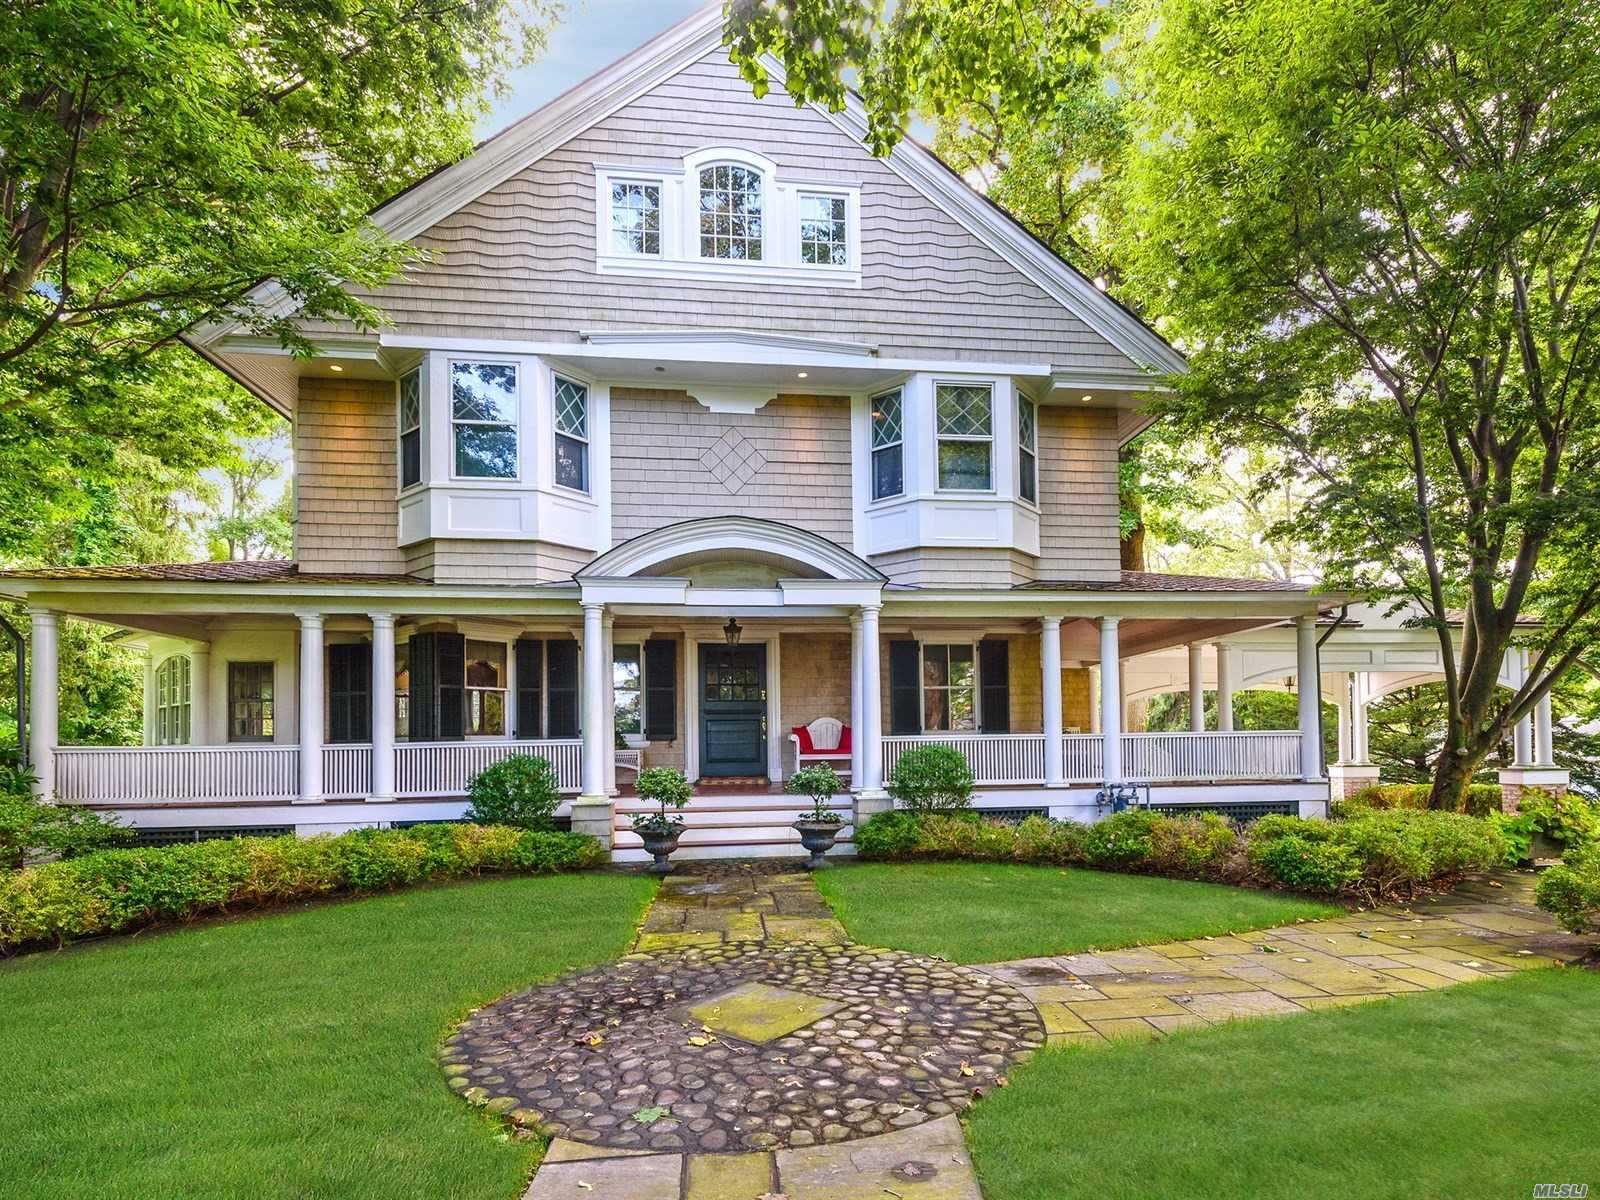 Idyllic Home Located In Sought-After Huntington Bay. Offering A Lifestyle That Embraces The Outdoors With Close Proximity To The Long Island Sound, Huntington Bay, Huntington Harbor And Huntington Village. Superior Curb Appeal And Interior: Full Front Porch, 10' Ceilings, Two Fireplaces, Perfectly Appointed Principal Rooms And Bedrooms. Radiant Heated Eik And Dining Room Designed To Accommodate Large Gatherings. En Suite Master W/Balcony. Gorgeous Private Acre W/Views And Har-Tru Tennis Court.